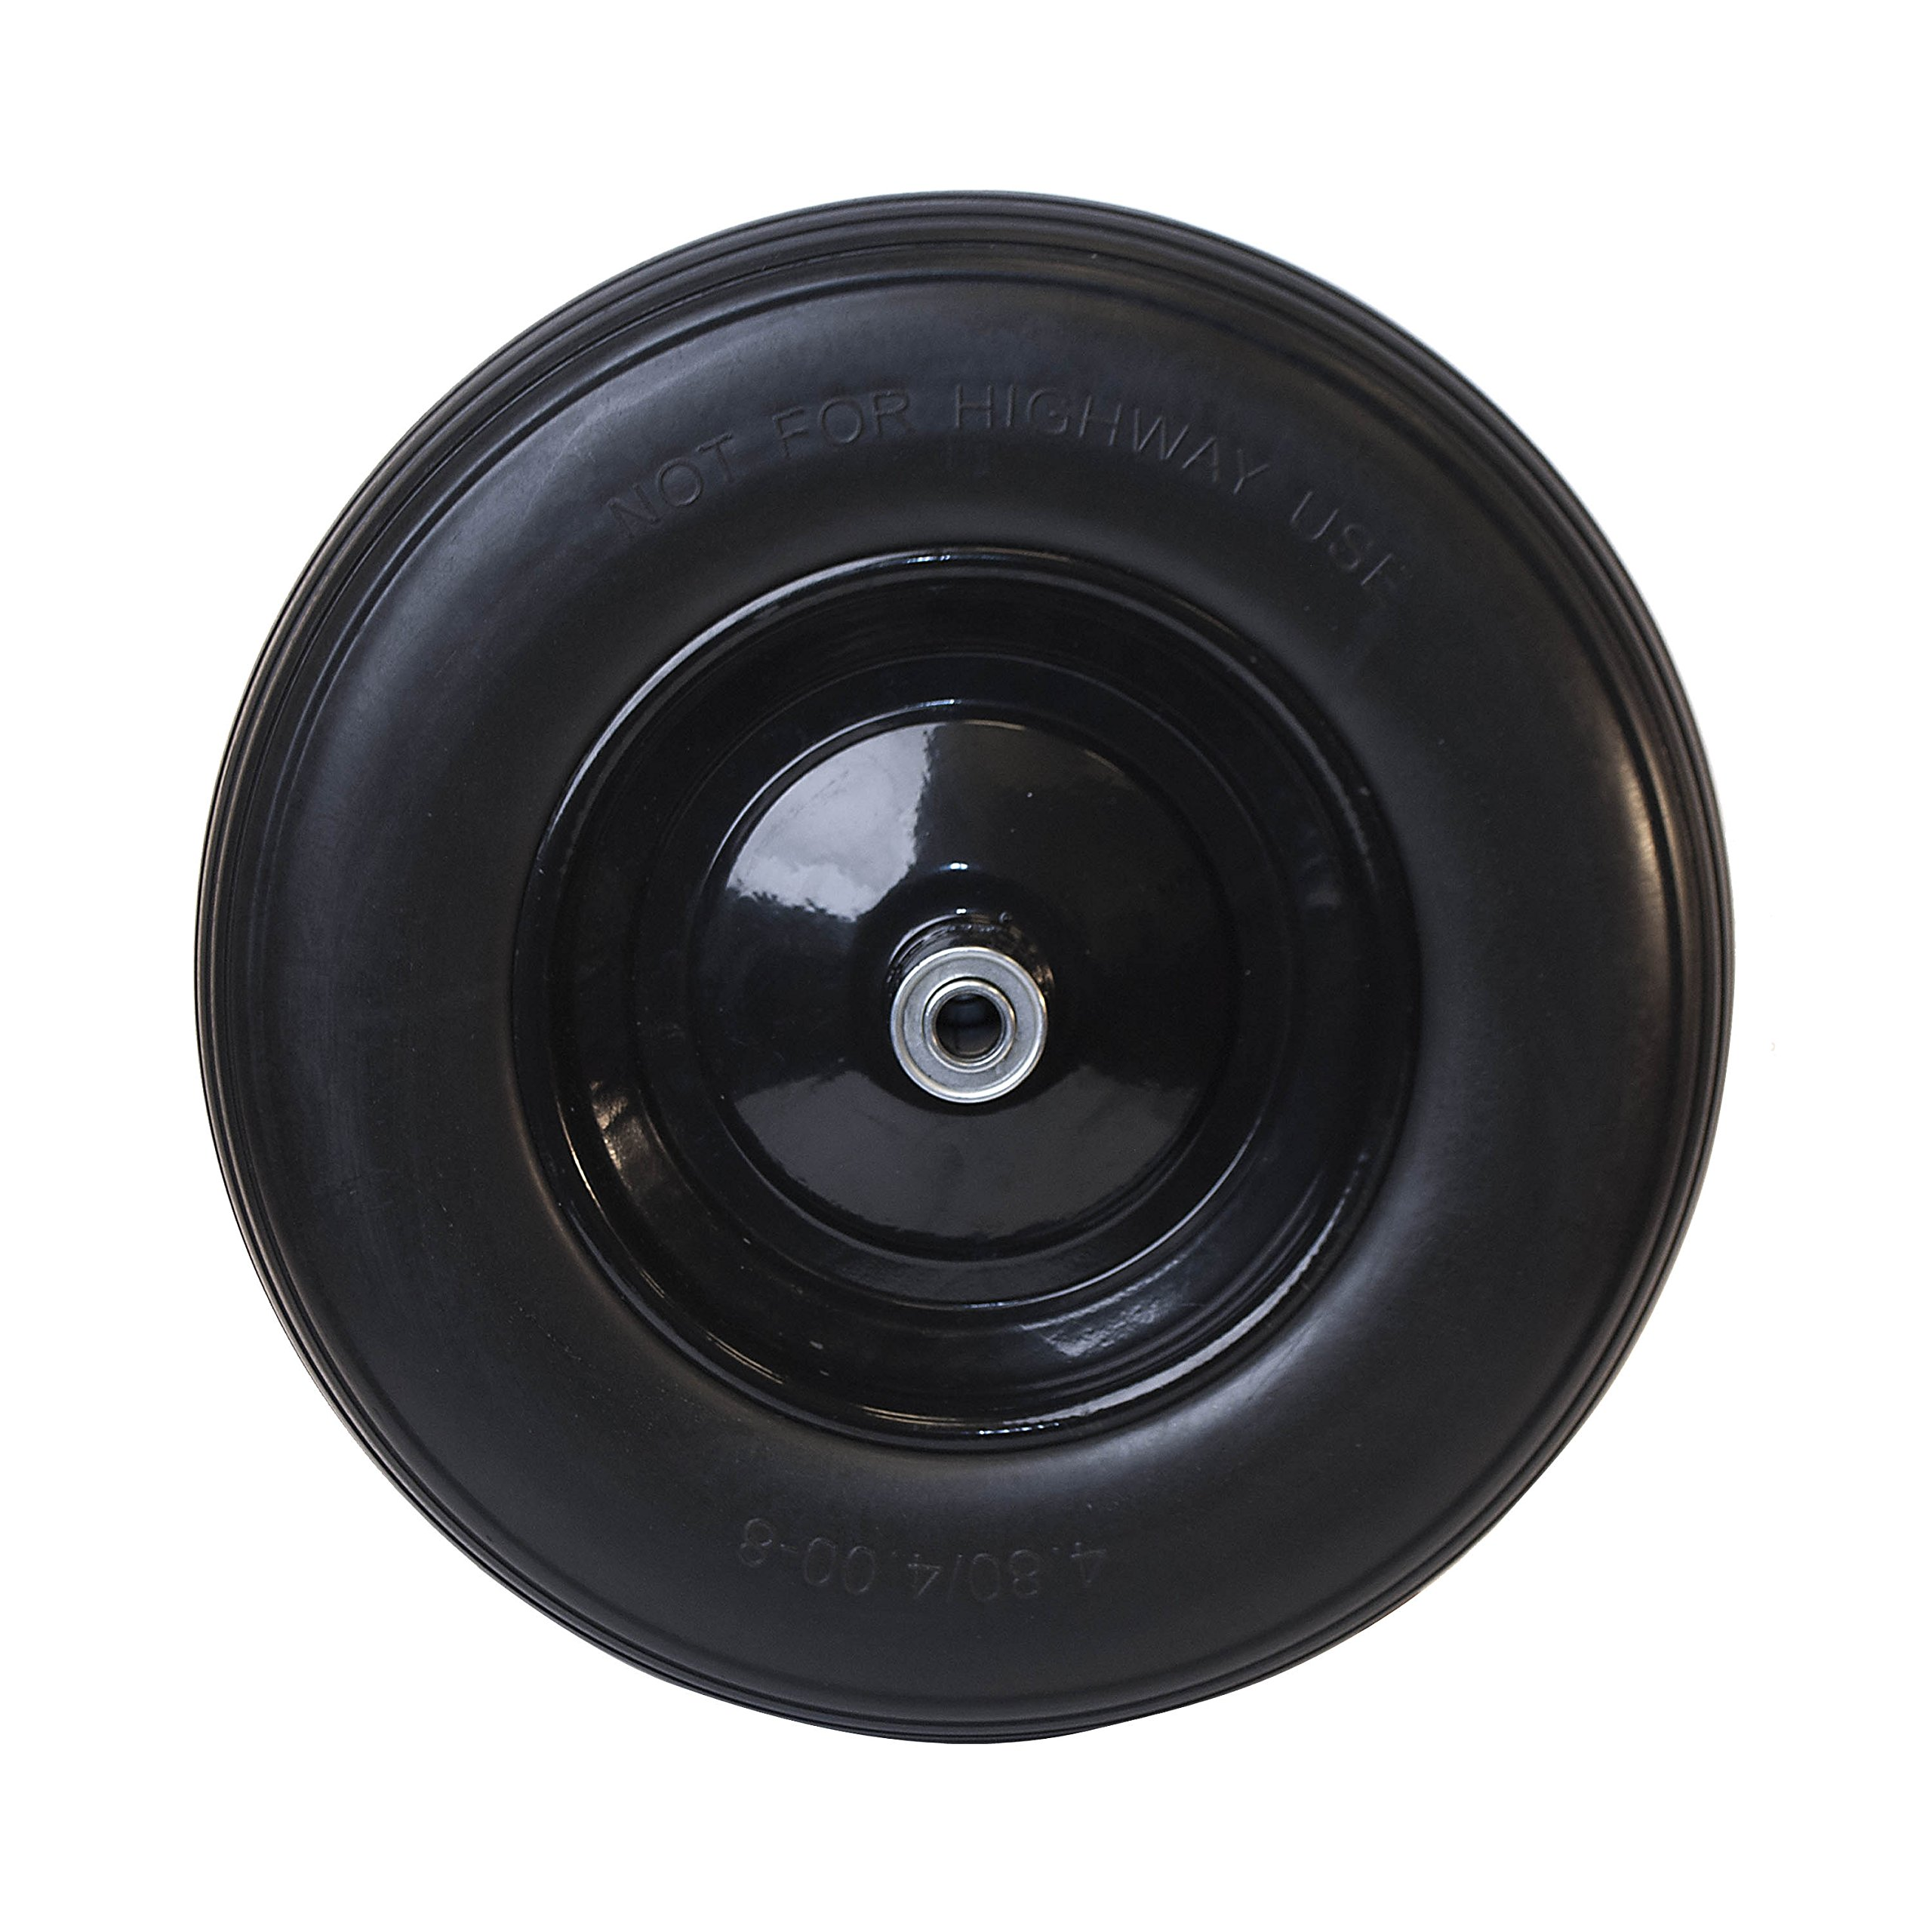 Ireko WBNF16 Anti Flat Ribbed Replacement Wheel for Wheelbarrow 16 Inches No Flat Tire Black